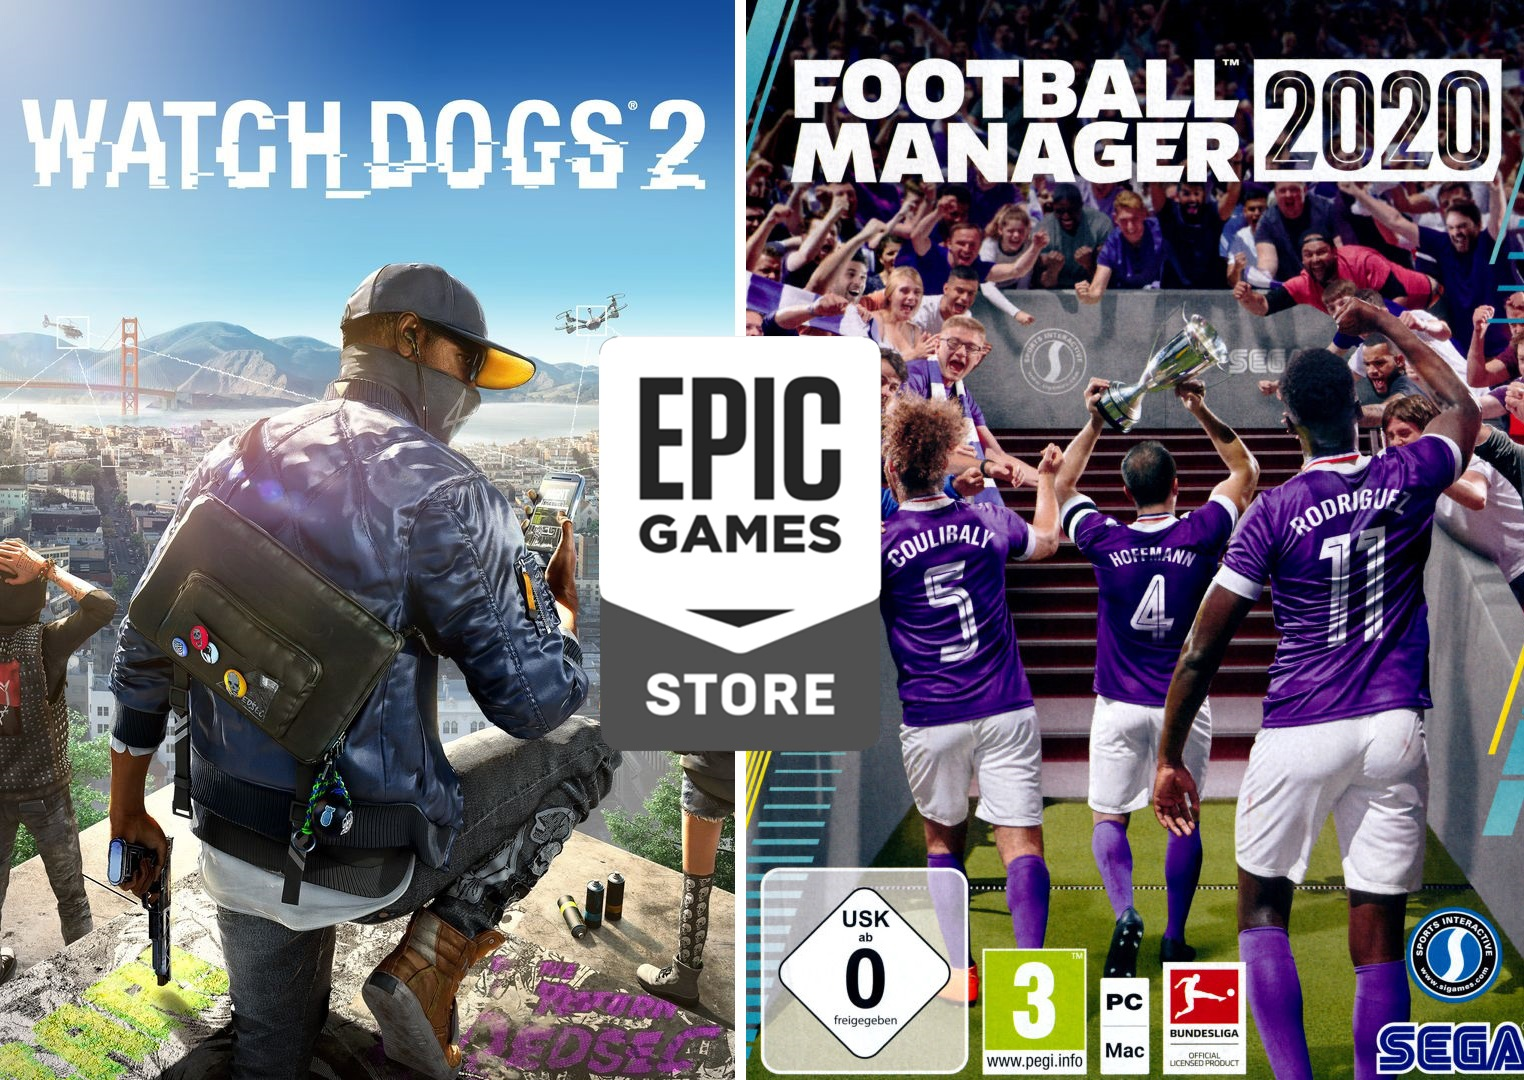 epic games football manager watch dogs 2